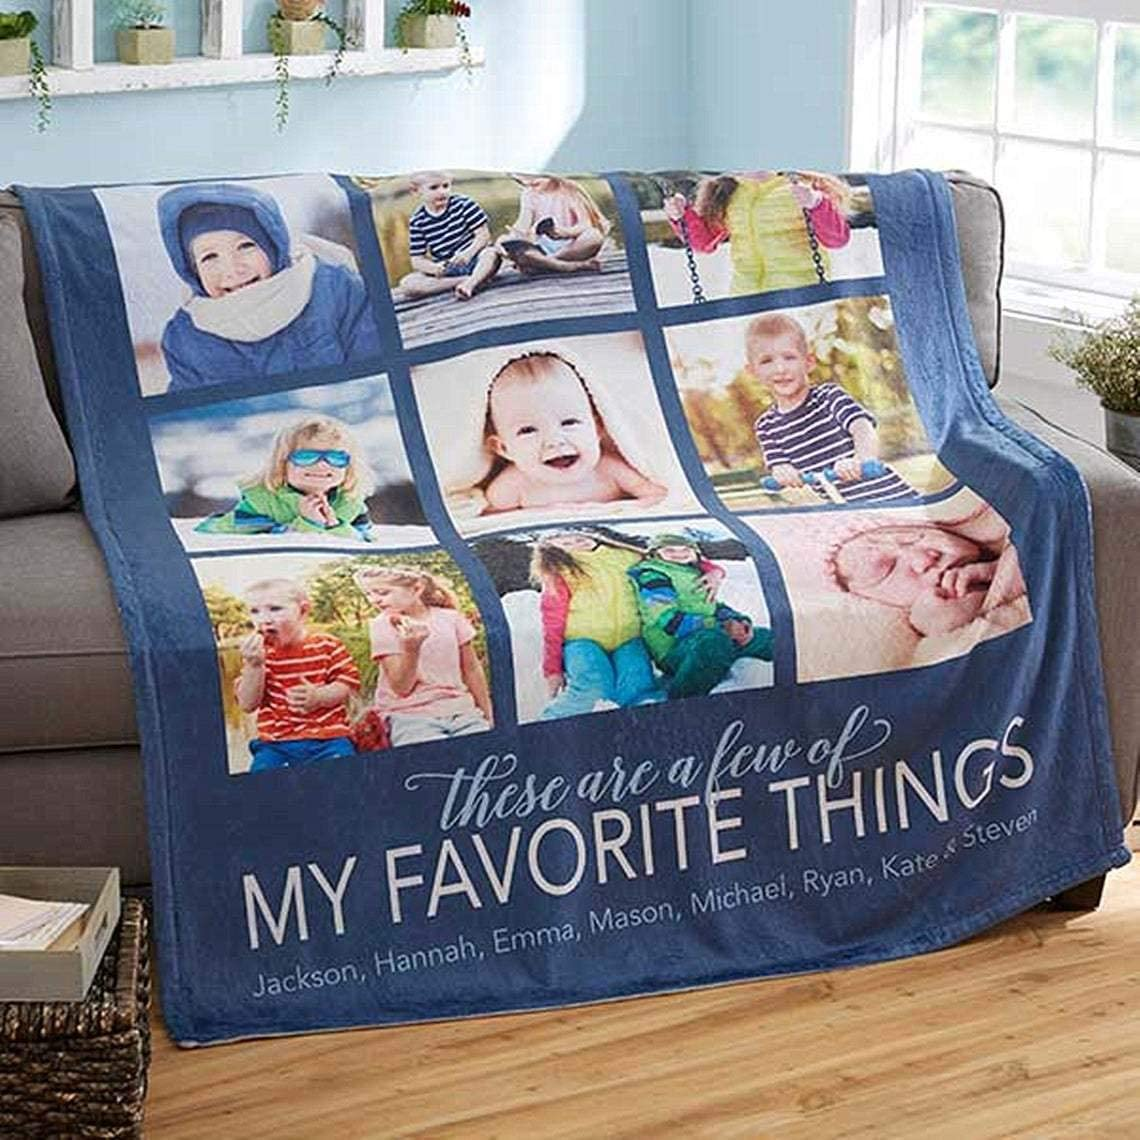 Personalized Name Blanket for Custom Free Special price for a limited time shipping on posting reviews with Grandma